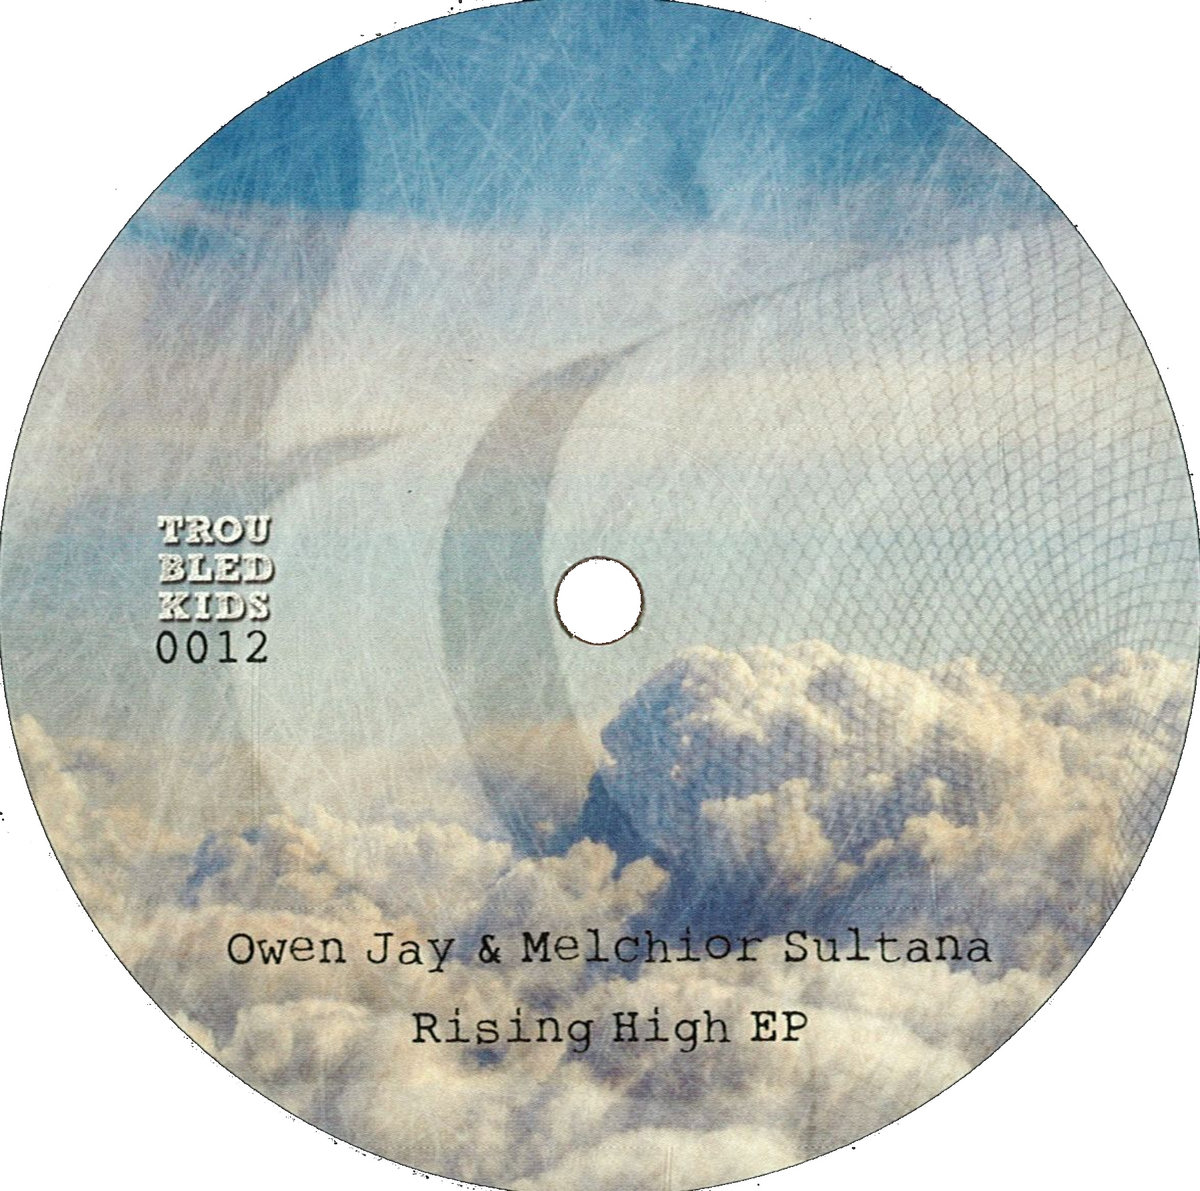 Owen Jay & Melchior Sultana - Risign High Ep | Troubled Kids